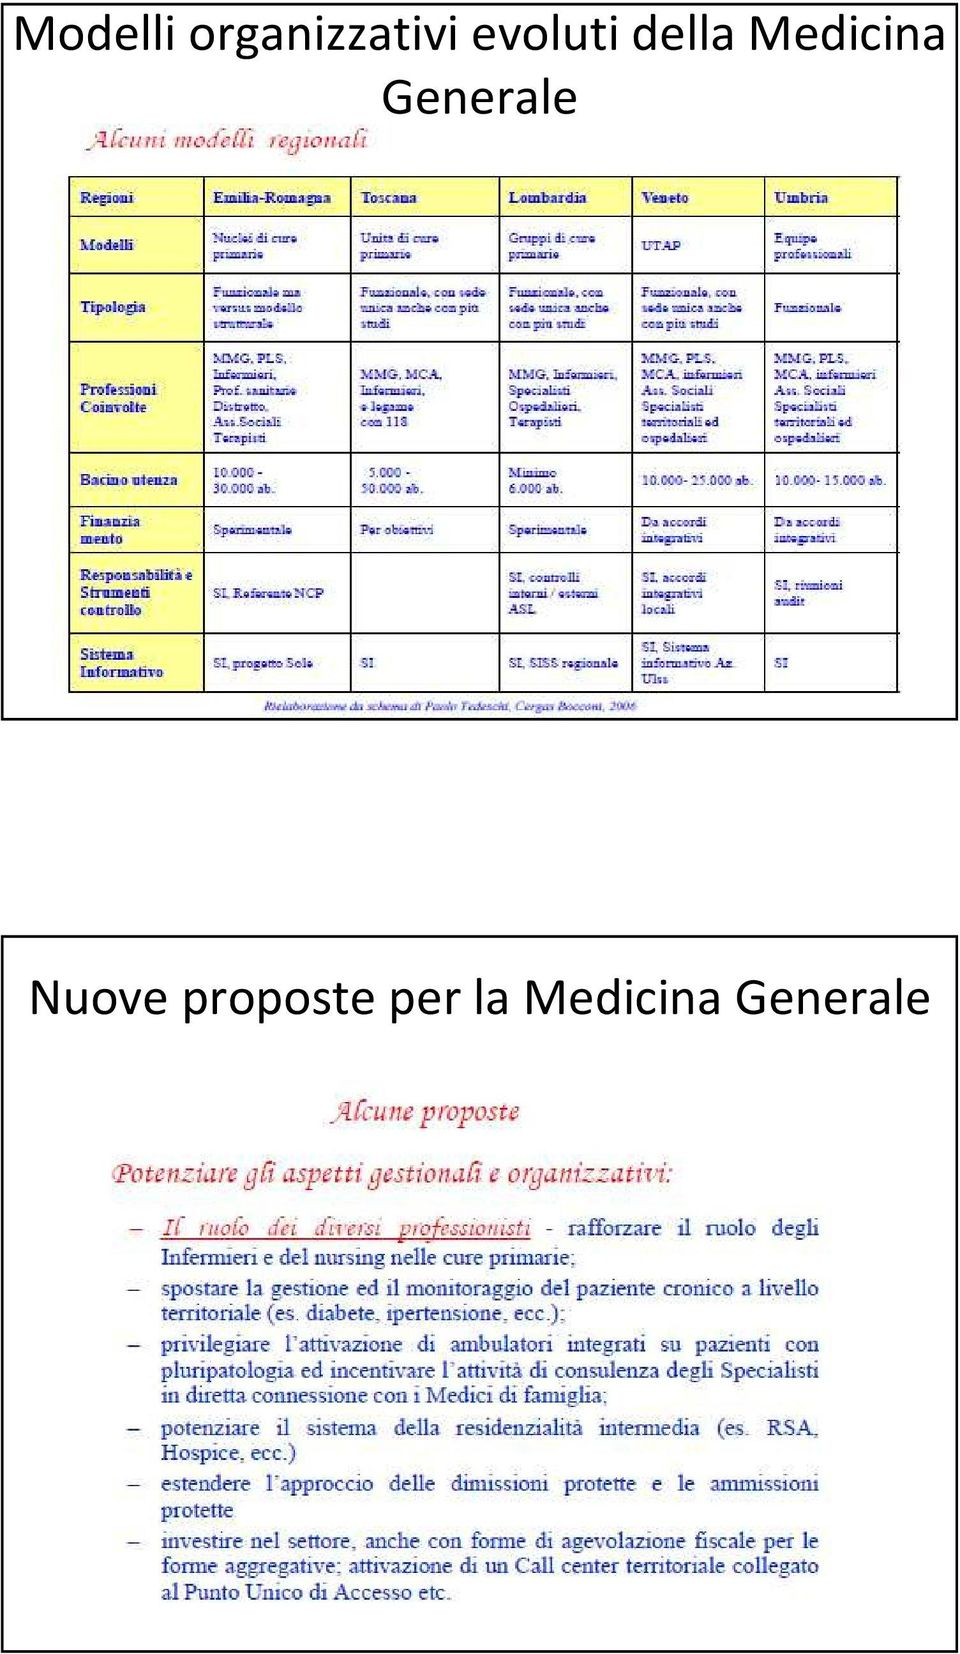 Generale Nuove proposte